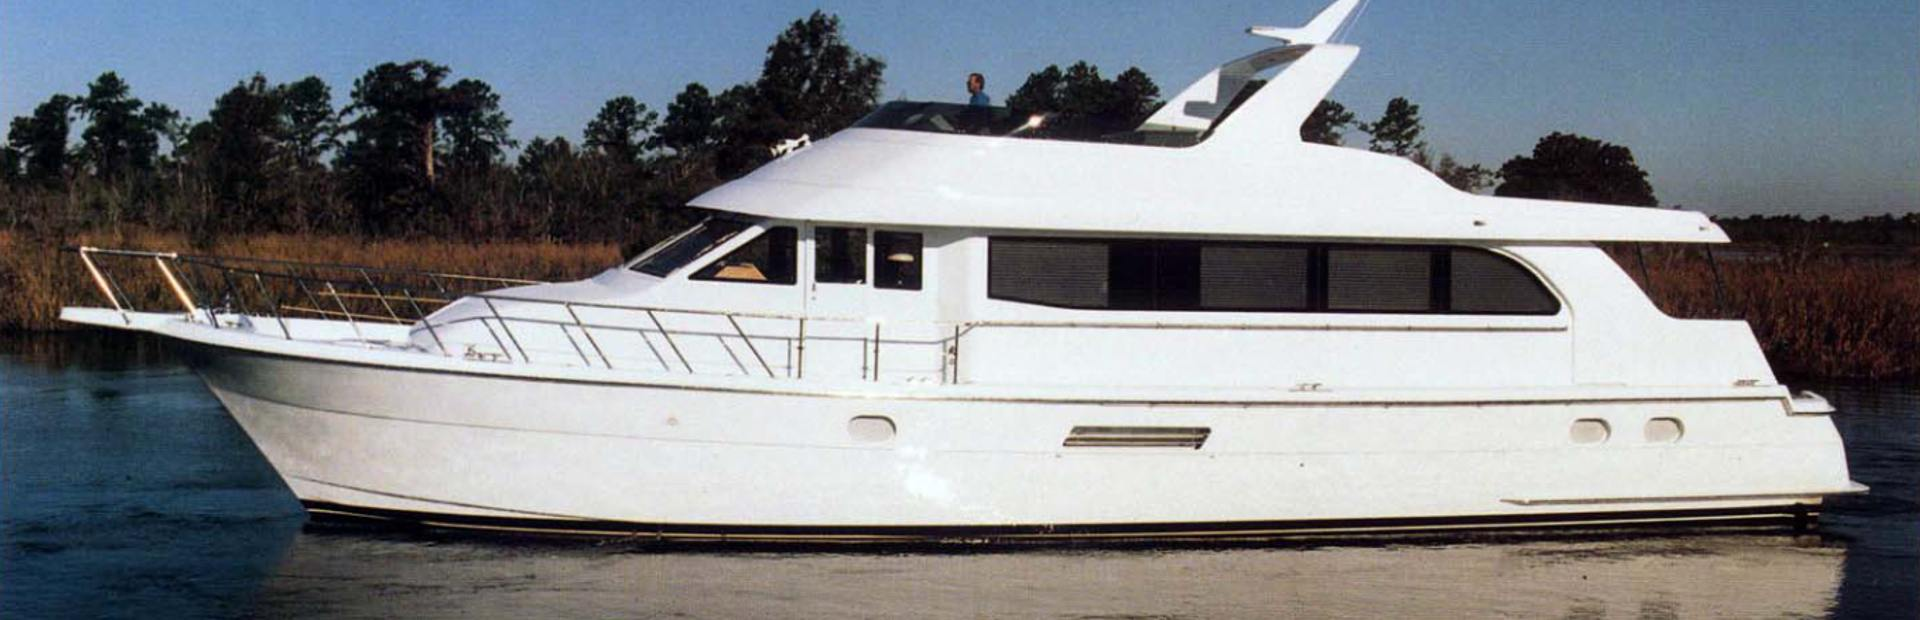 Hatteras 75 SD Extended Yacht Charter